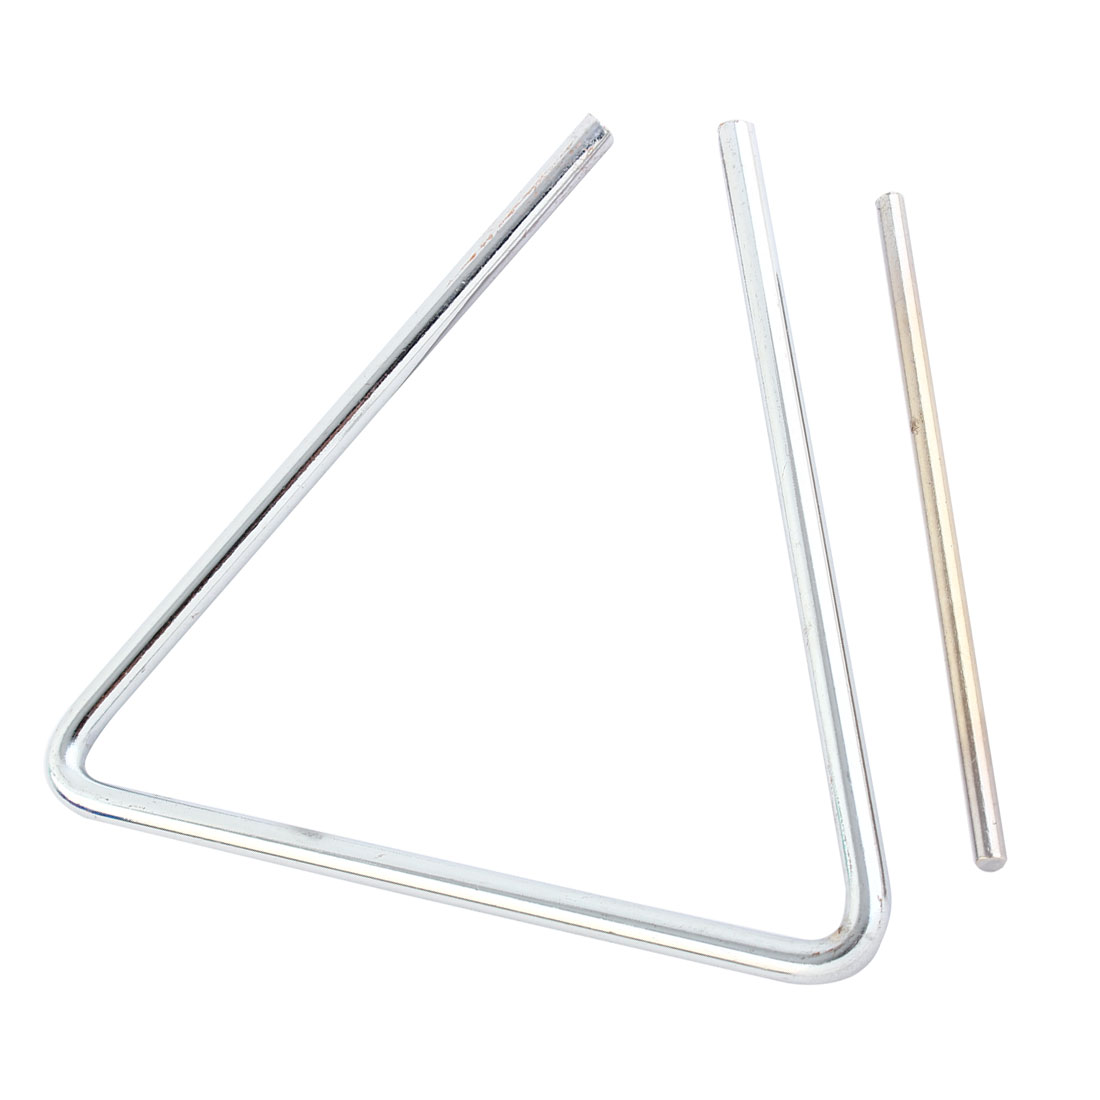 Musician Steel Orchestral Percussion Triangle Musical Silver Tone 6 Inch Long